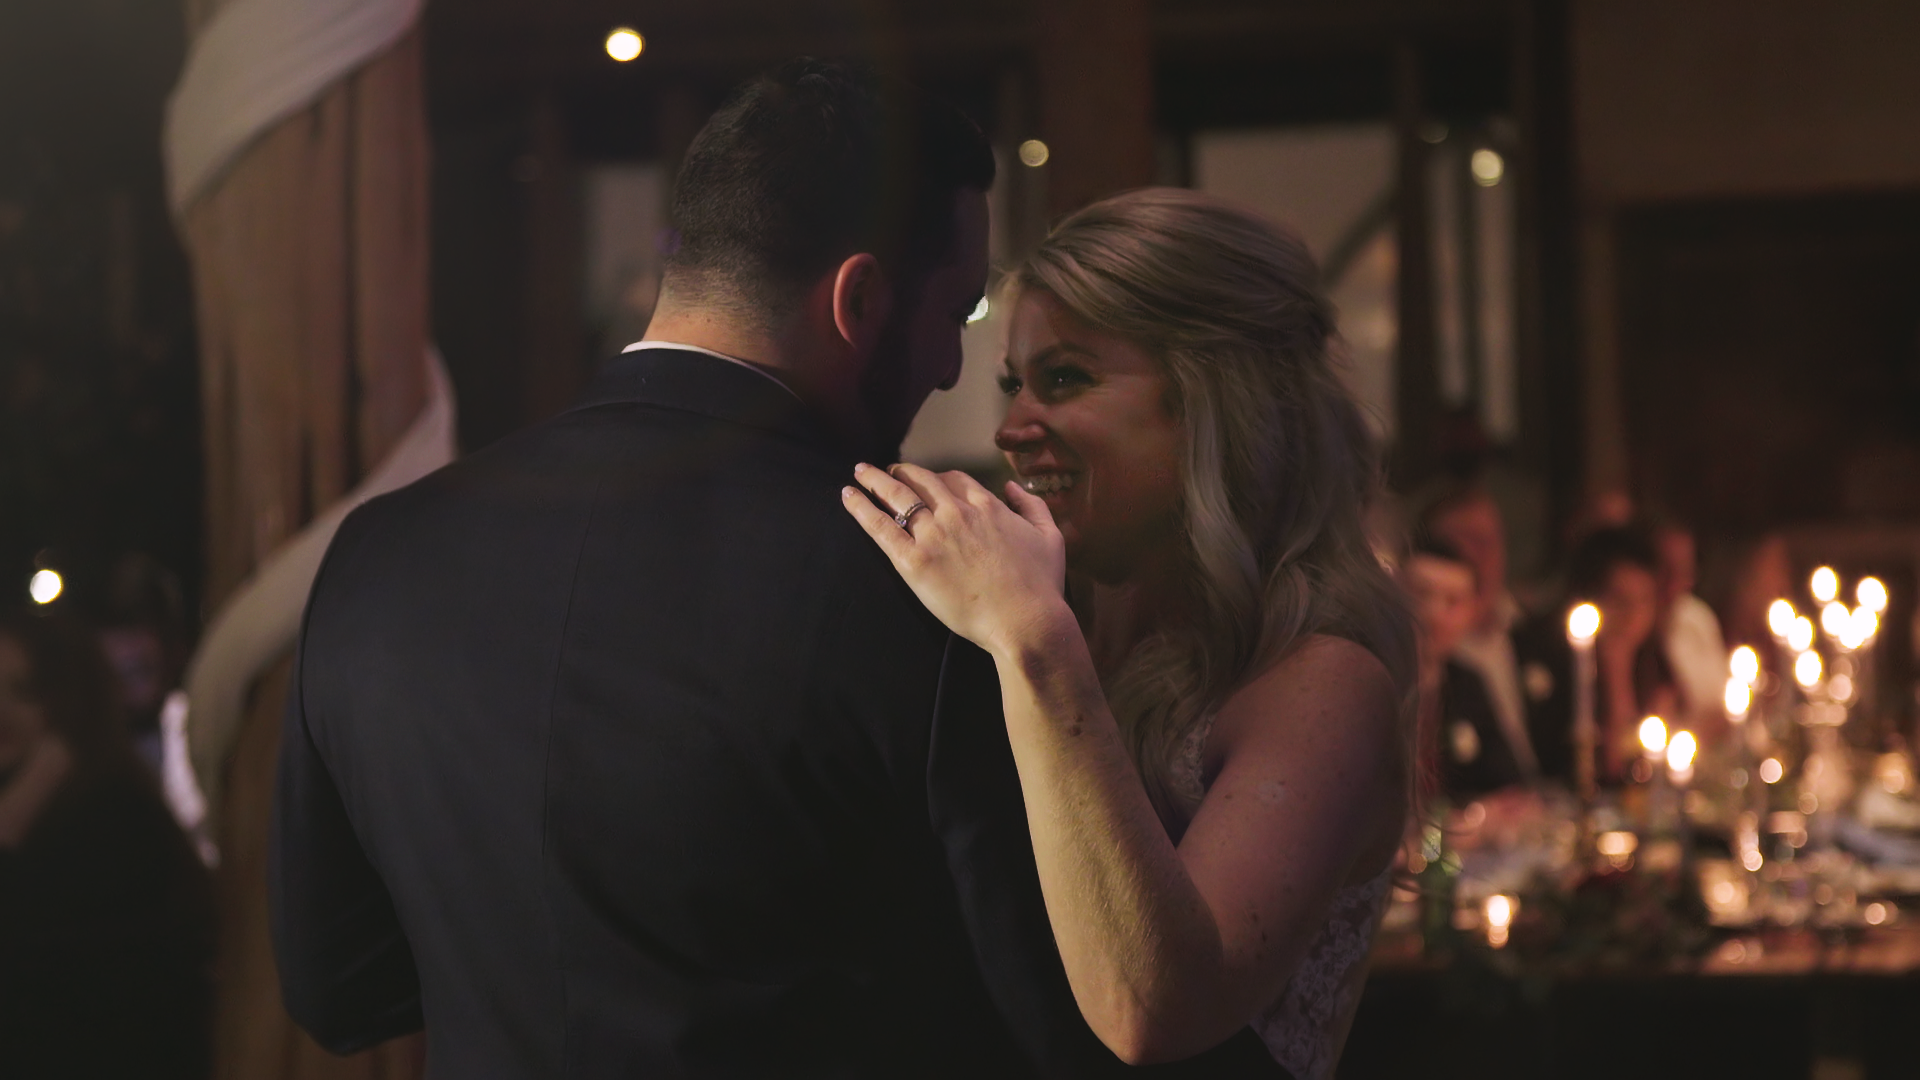 Barr_Mansion_Austin_Wedding_Videographer_New_Beginnings_Films_44.png